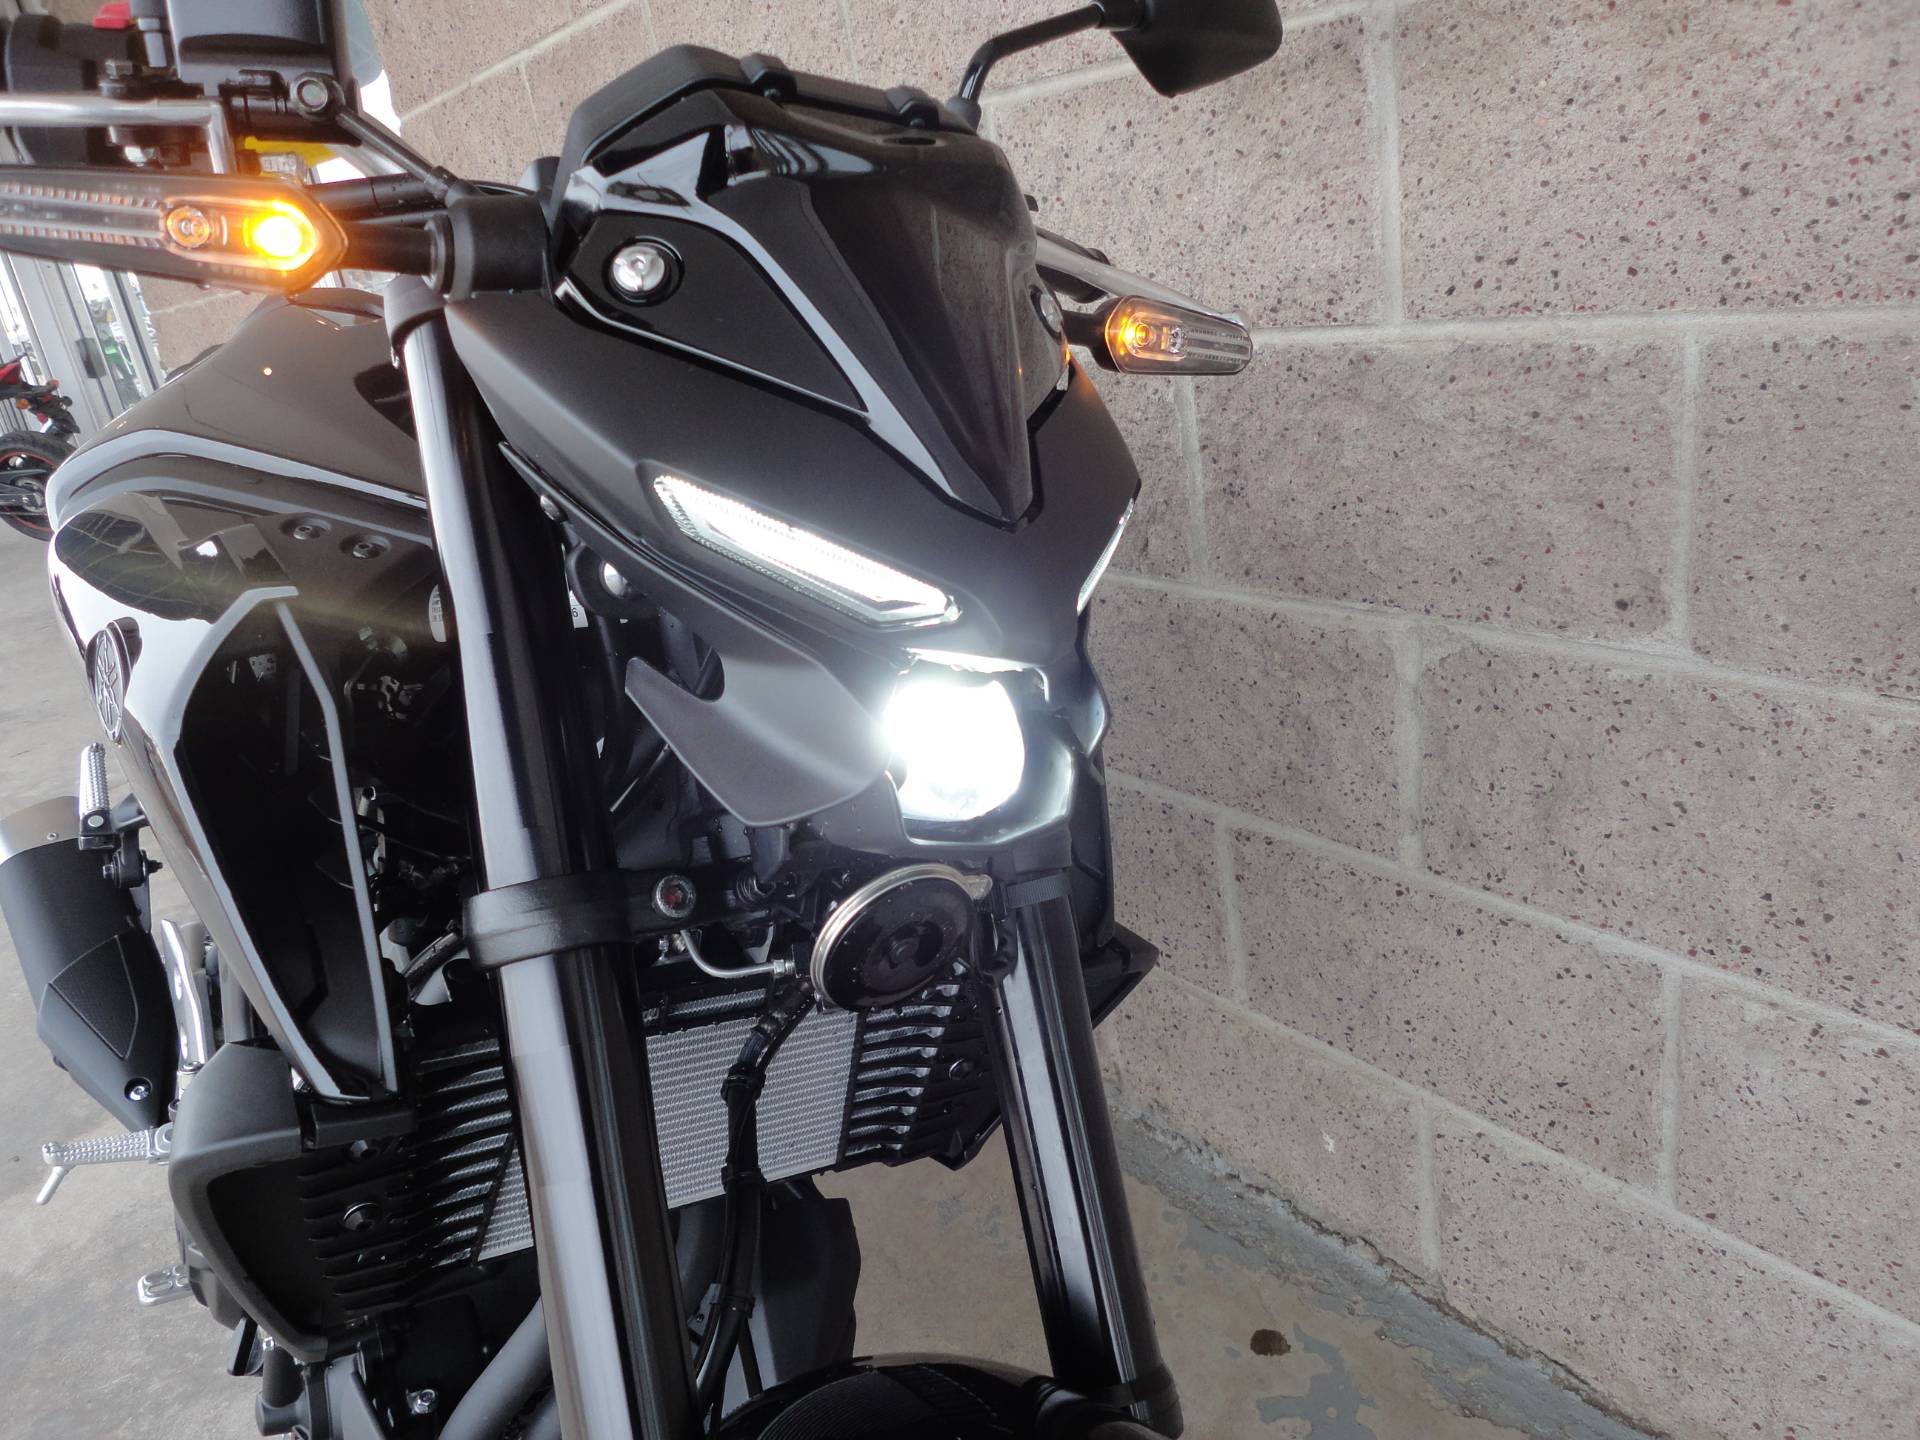 2020 Yamaha MT-03 in Denver, Colorado - Photo 18